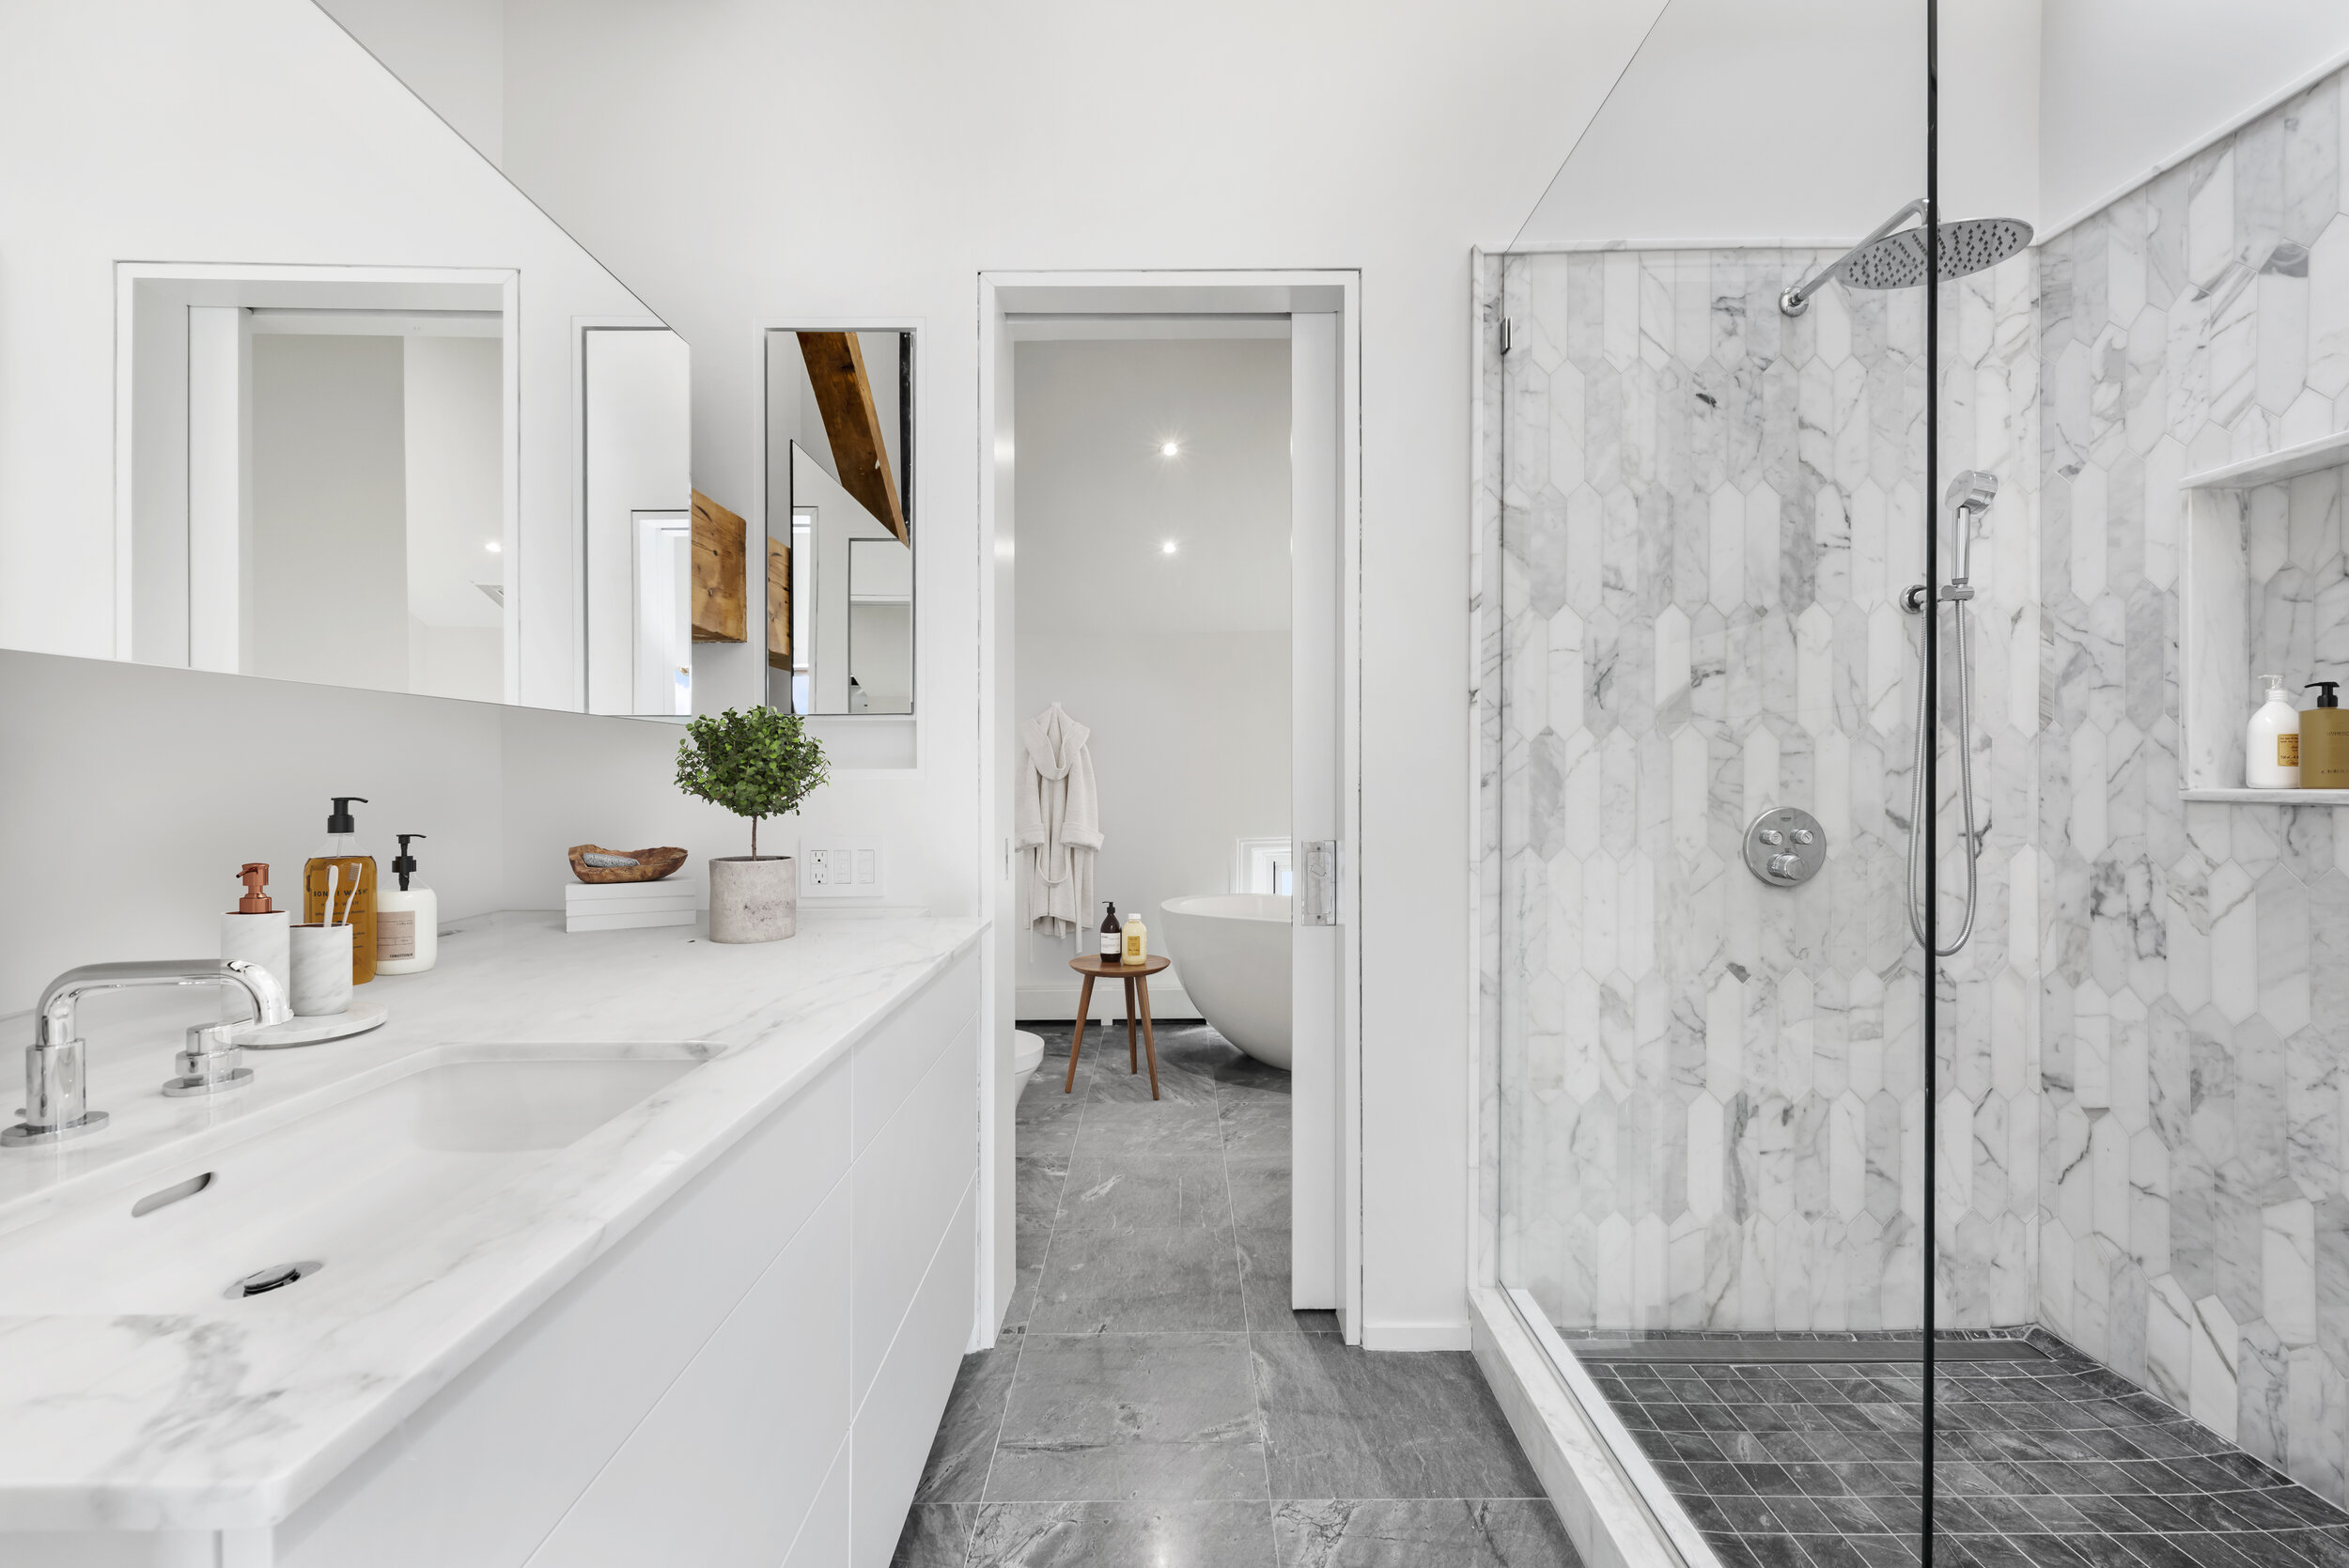 The homeowner, a designer with impeccable taste, selected custom tiles for each bathroom.